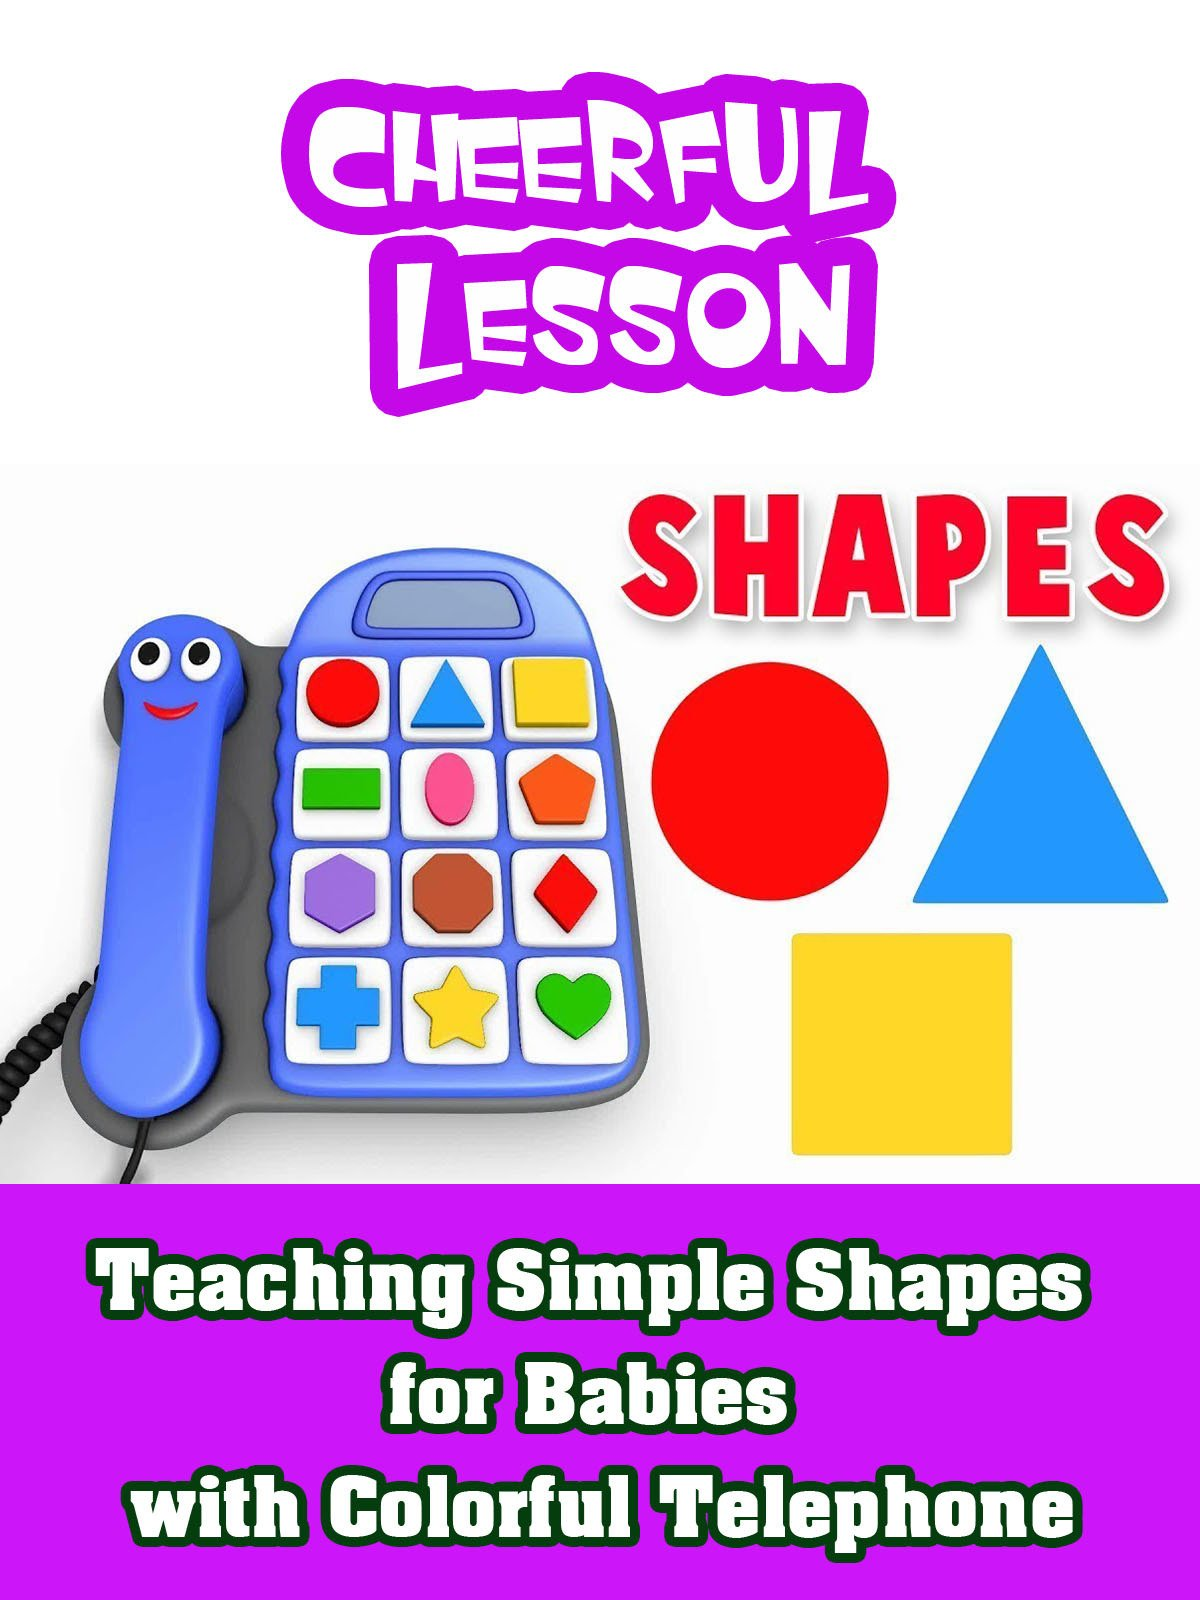 Teaching simple shapes for babies with colorful telephone